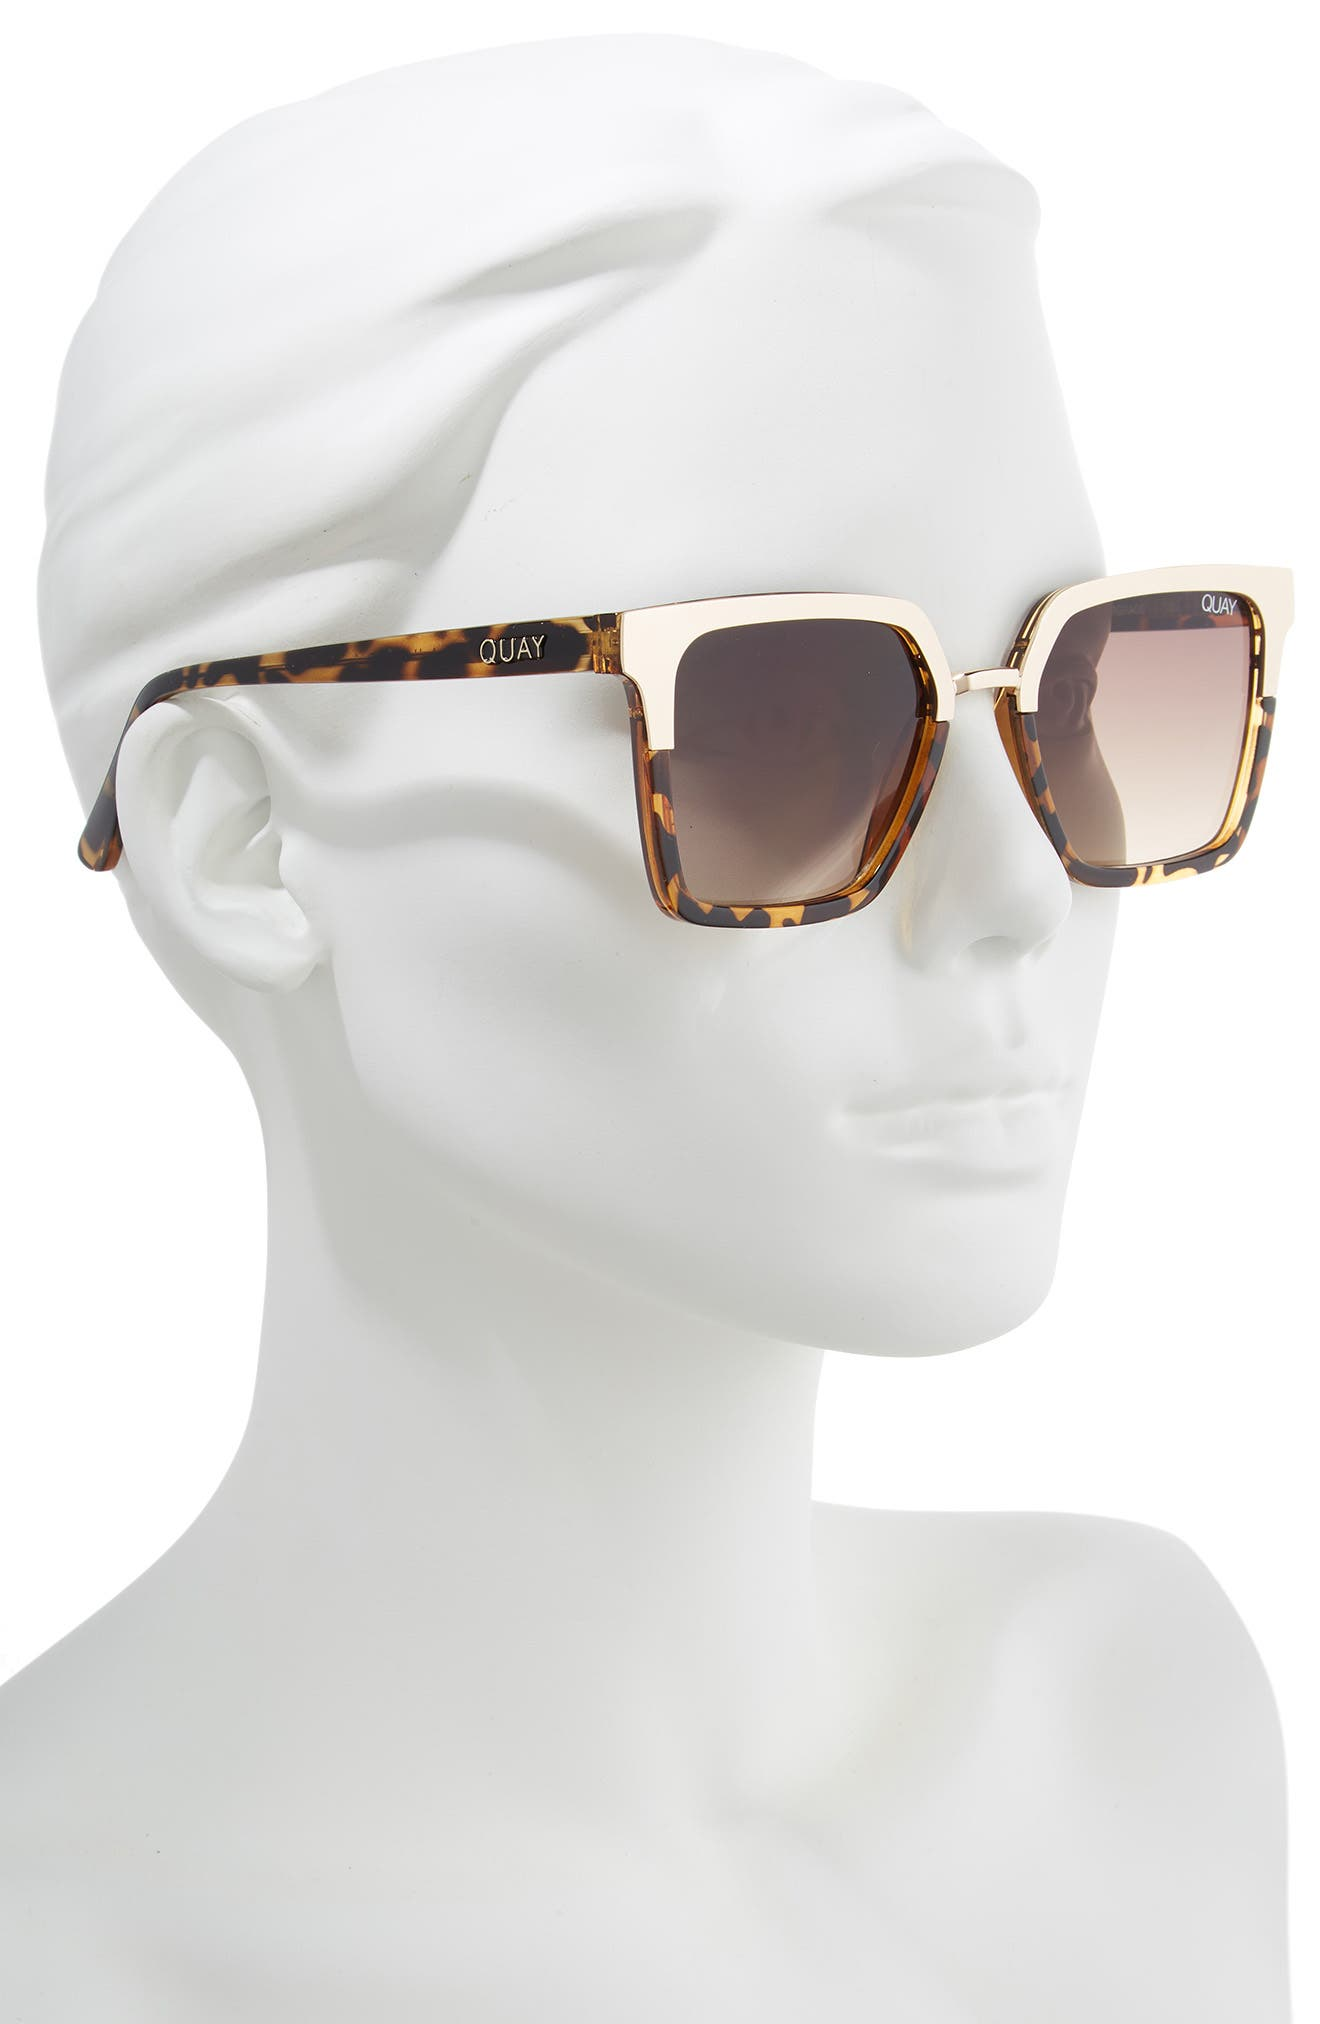 x Jaclyn Hill Upgrade 55mm Square Sunglasses,                             Alternate thumbnail 3, color,                             TORT GOLD / BROWN